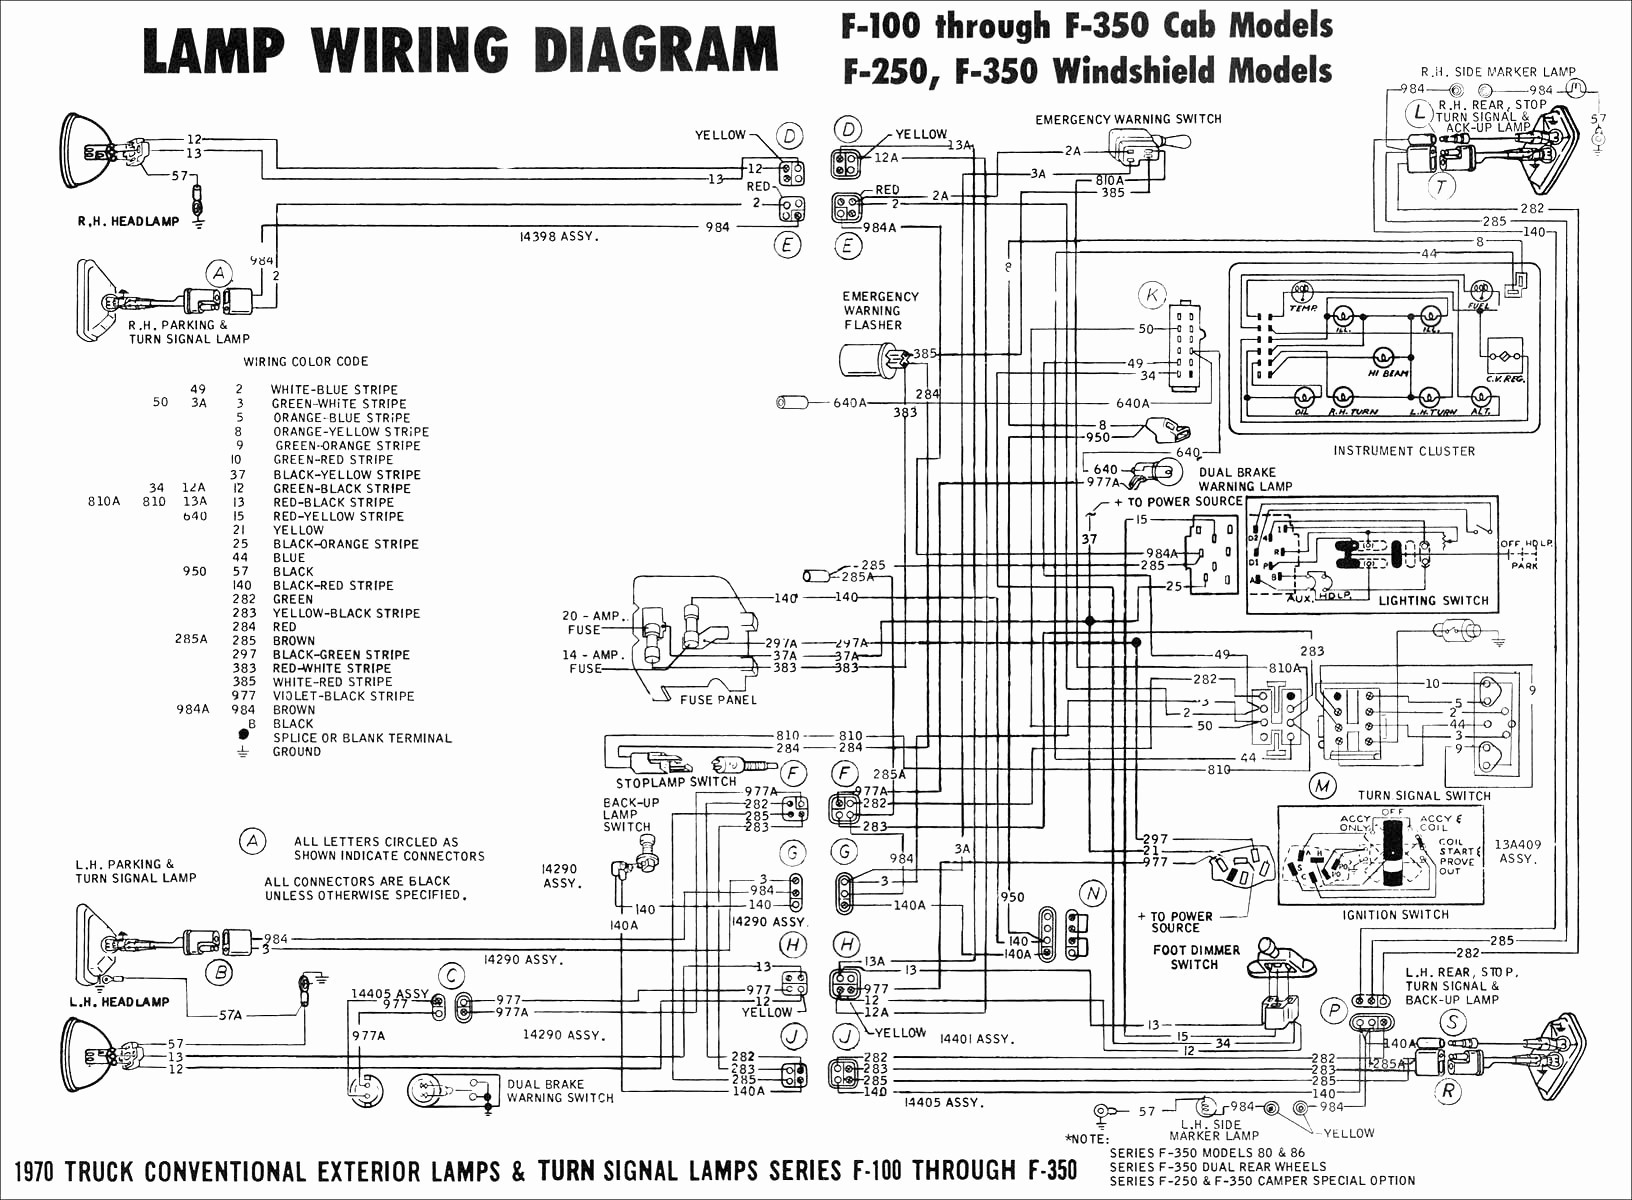 John Deere 4000 Wiring Diagram - Schematics Online on